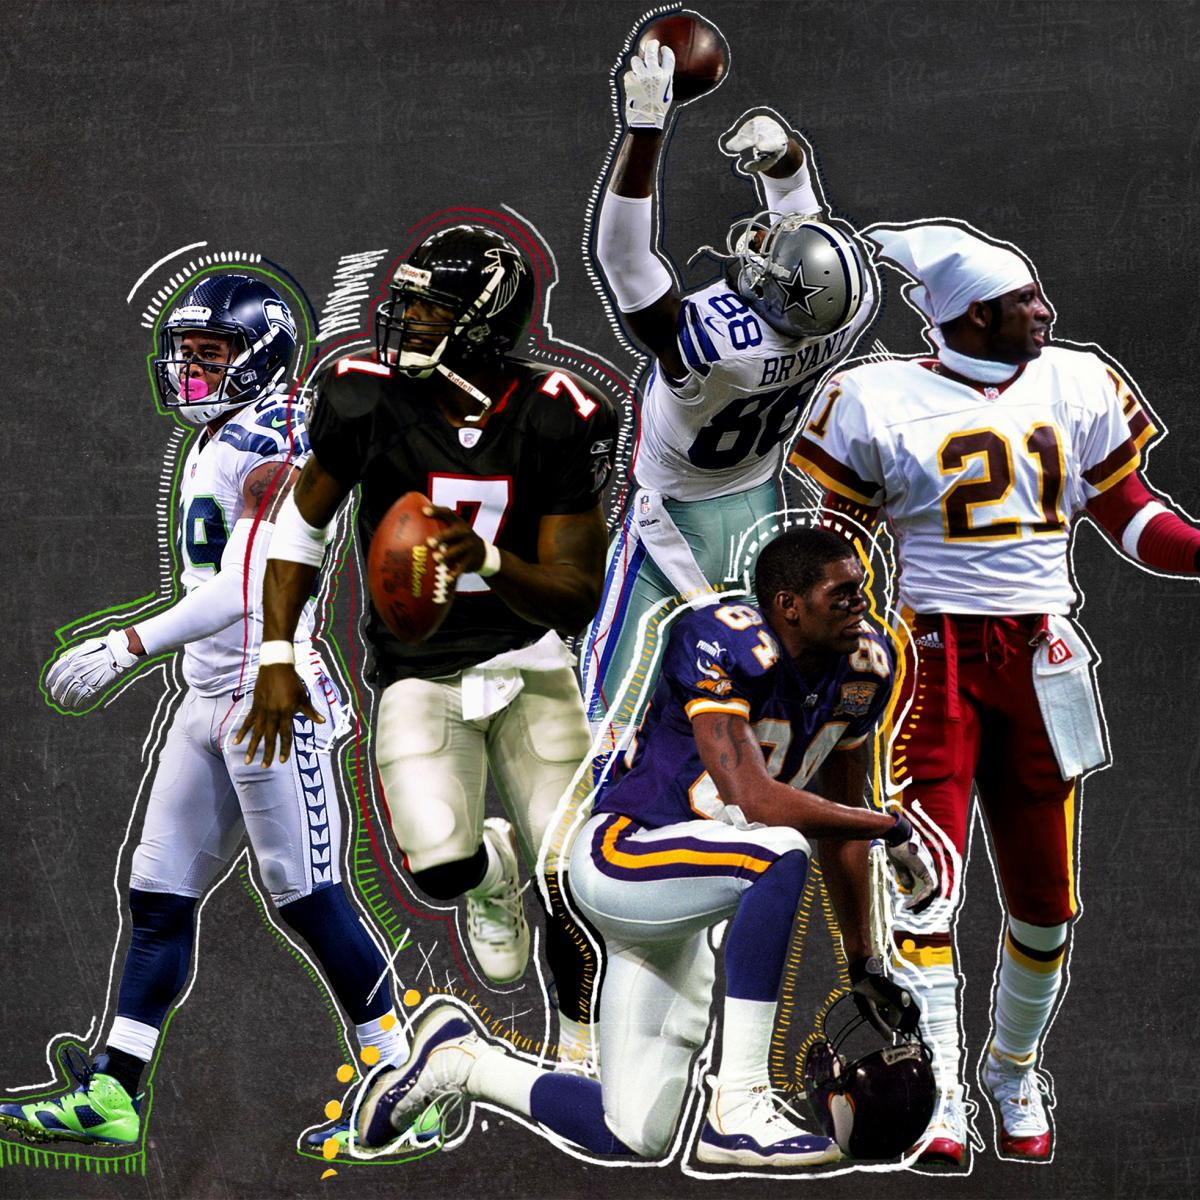 detailed look 5ccbf 33ed8 5 NFL Stars Who Wore Air Jordan Cleats   Bleacher Report   Latest News,  Videos and Highlights